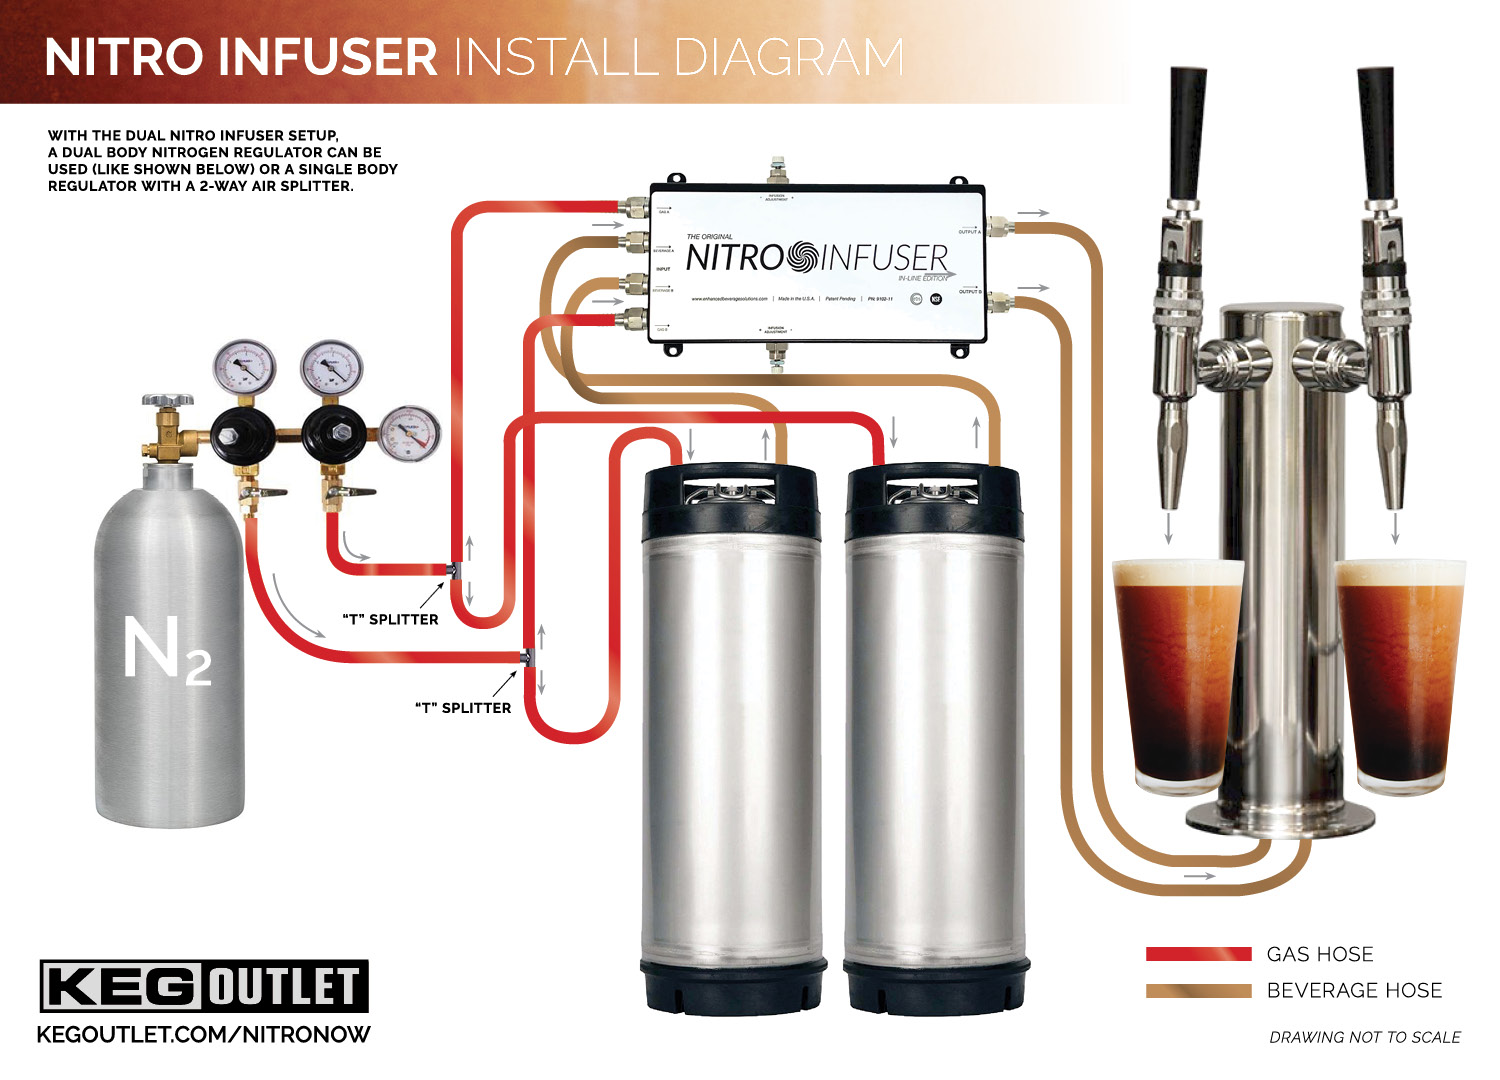 Dual Nitro Infuser Installation Diagram